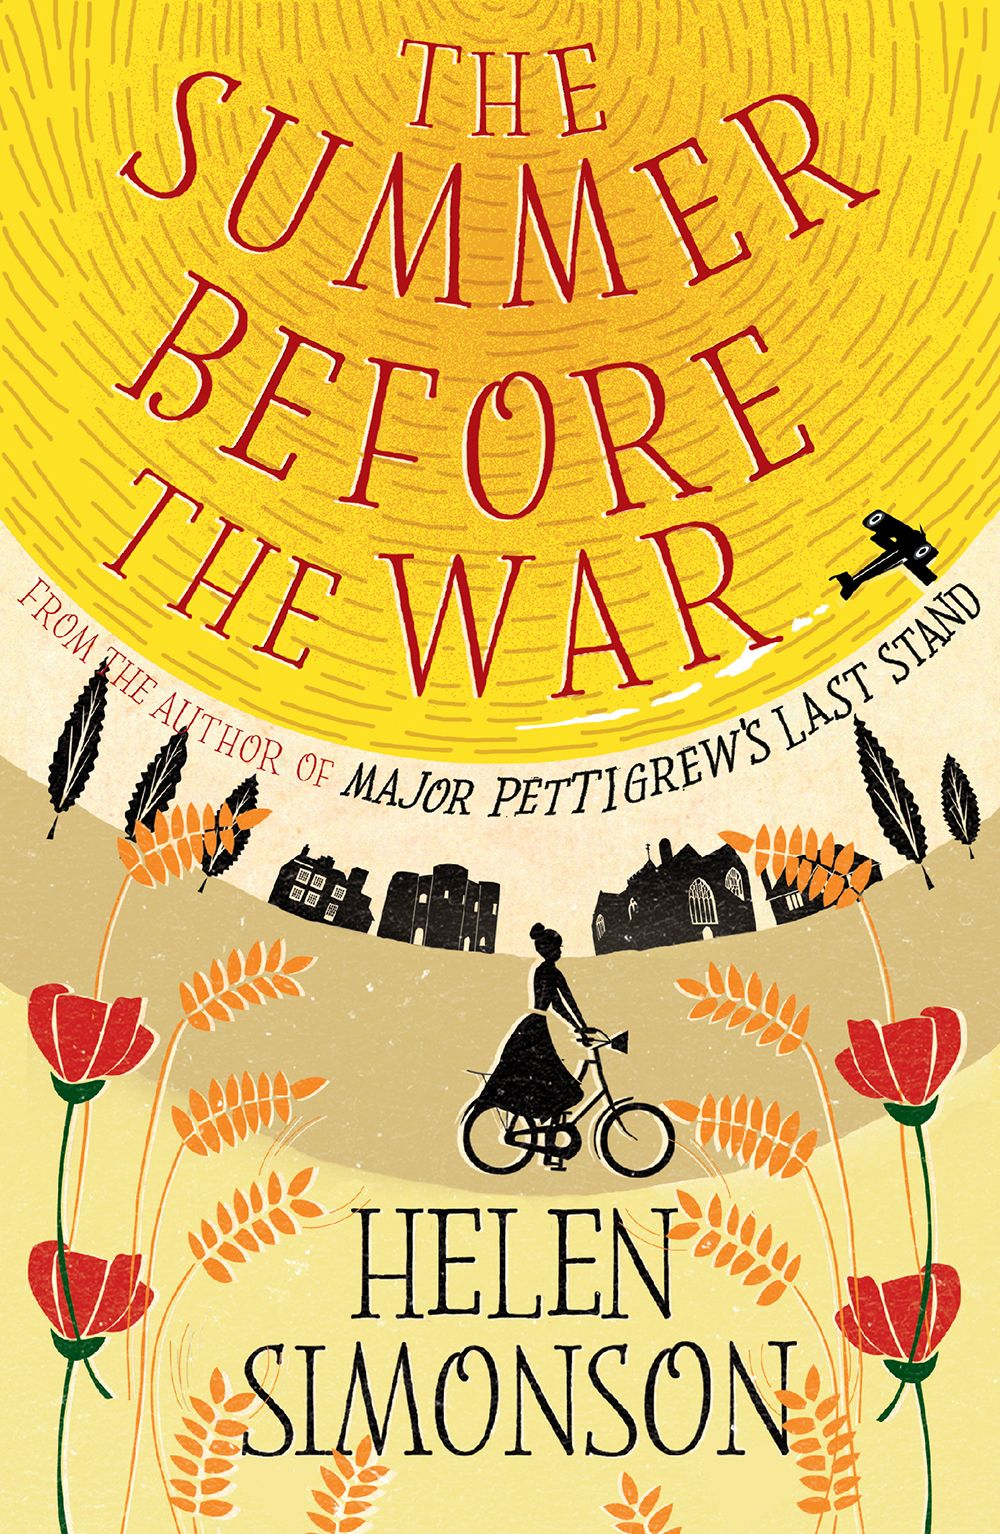 THE SUMMER BEFORE THE WAR is the latest work of brilliance from MAJOR  PETTIGREW'S LAST STAND